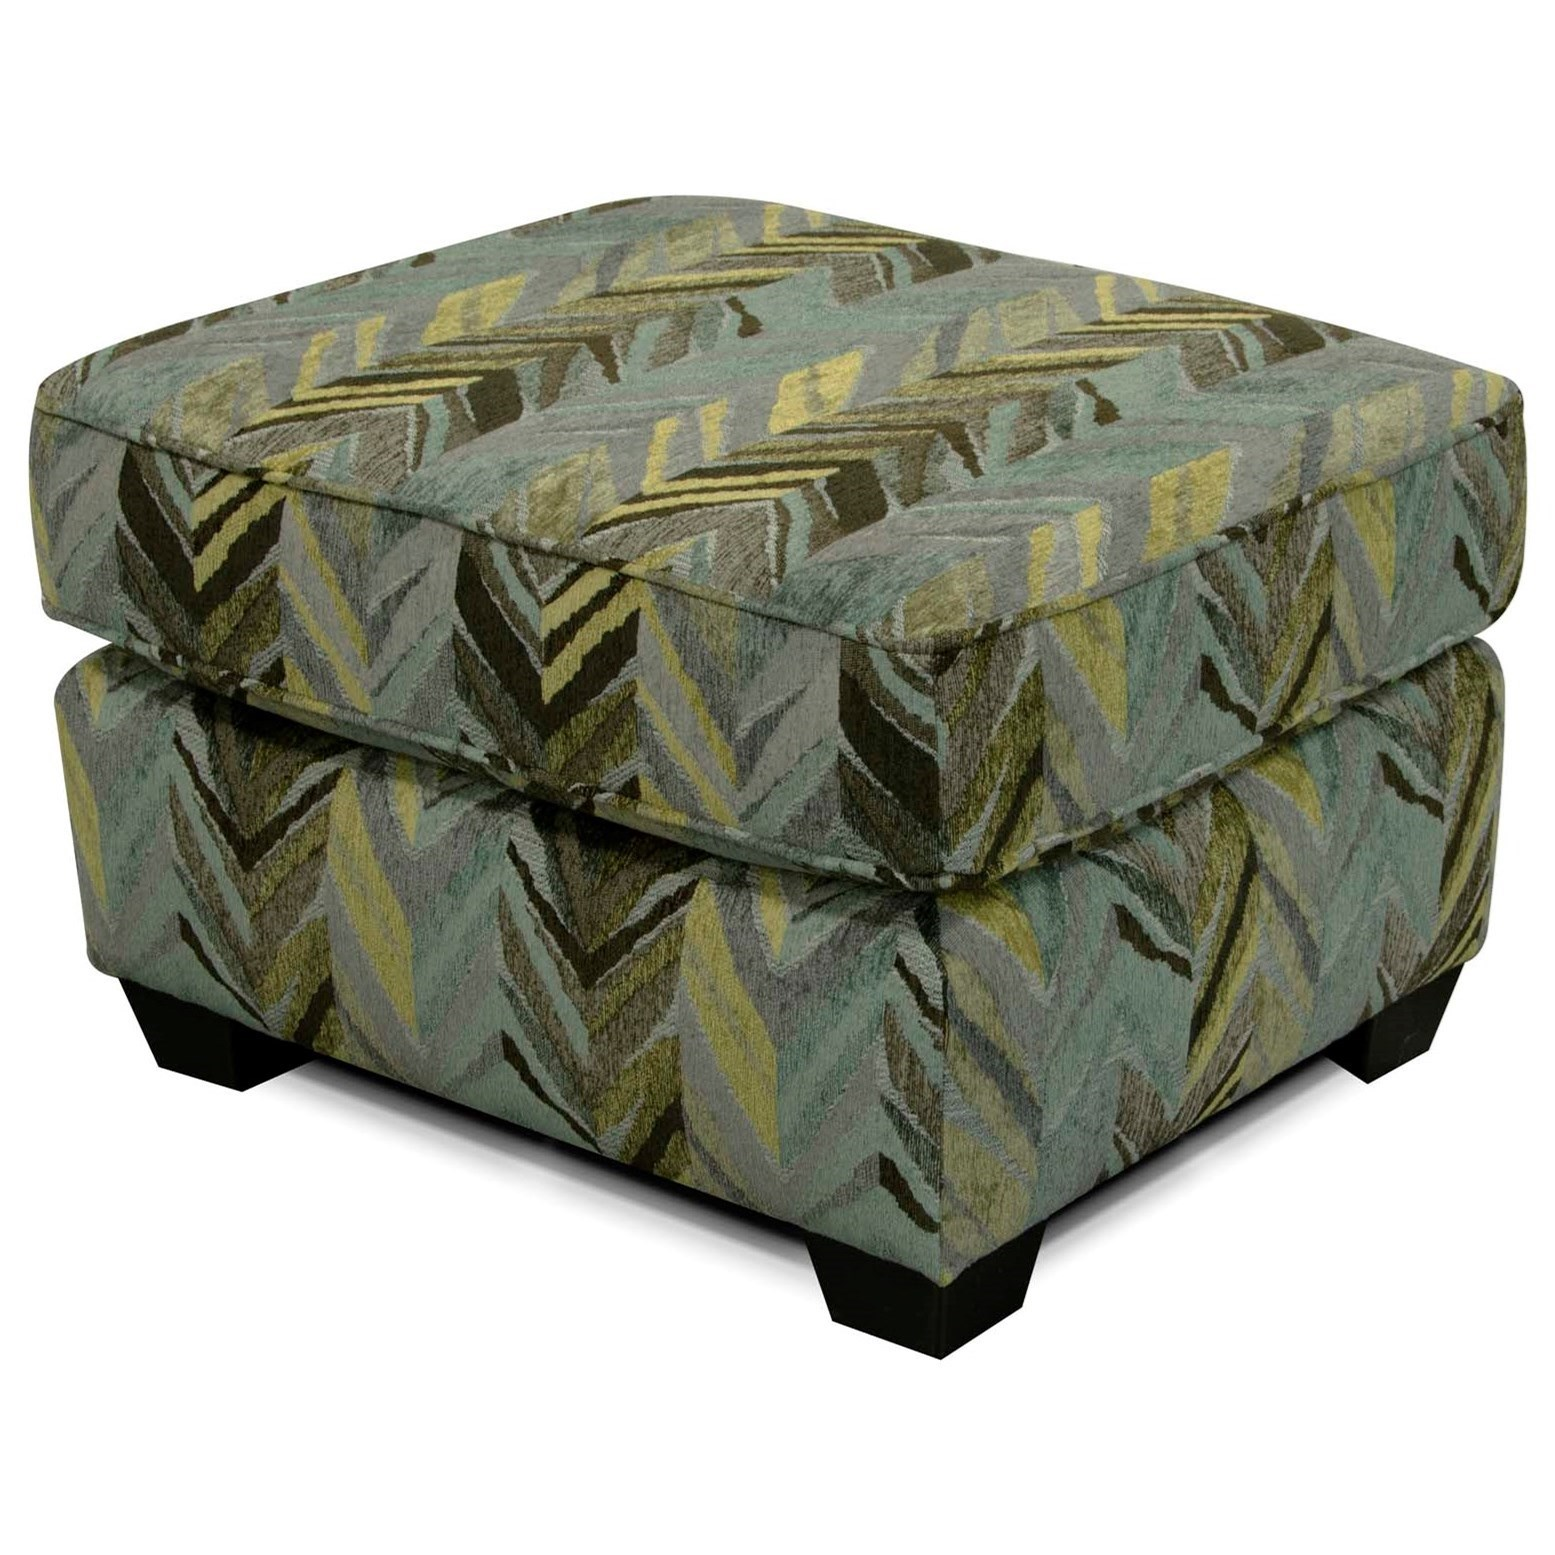 Smyrna Ottoman by England at Esprit Decor Home Furnishings